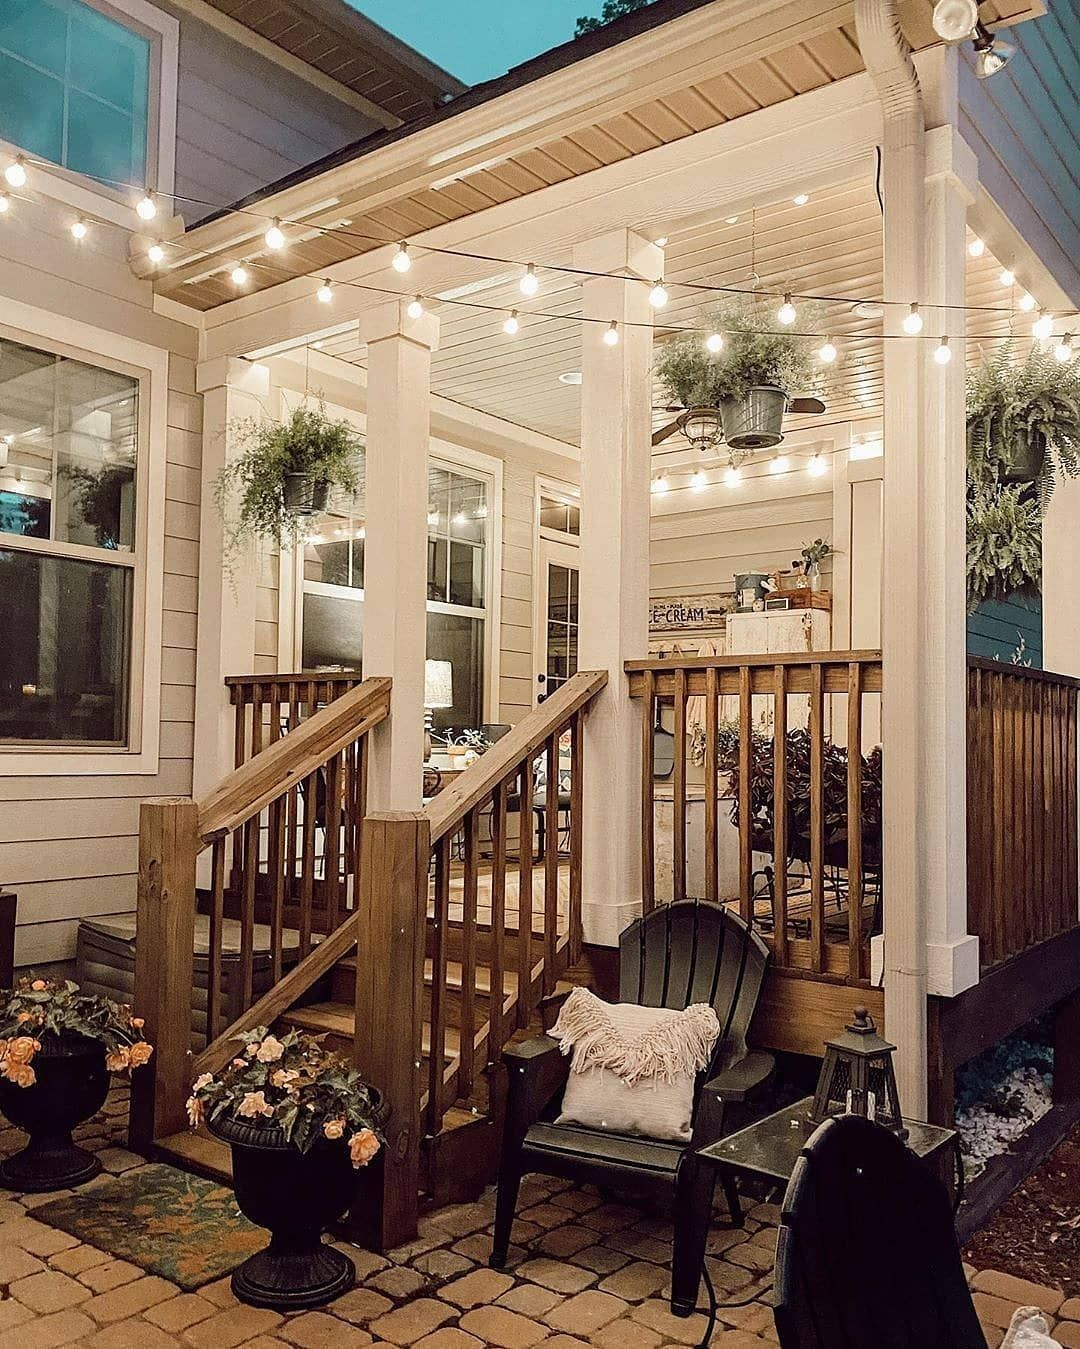 Farmhouse Charm On Instagram How Beautiful Is This Outdoor Patio It Looks Almost Magical Would You Love In 2020 Home Backyard Patio Designs Outdoor Living Backyard porch ideas for houses